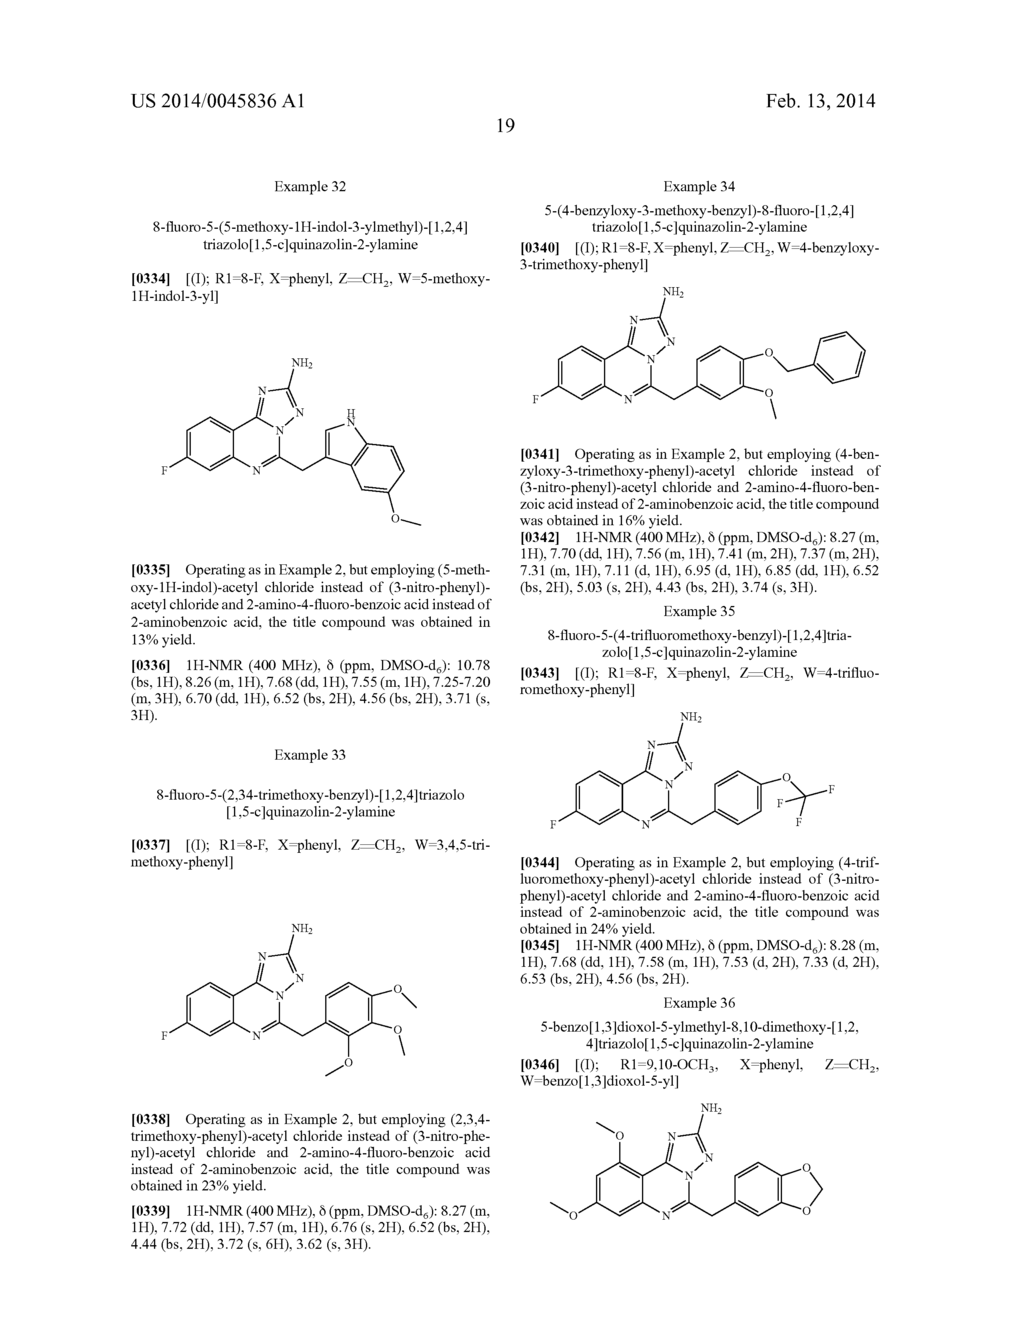 [1,2,4]TRIAZOLO[1,5-C]PYRIMIDINE DERIVATIVES AS HSP90 MODULATORS - diagram, schematic, and image 20